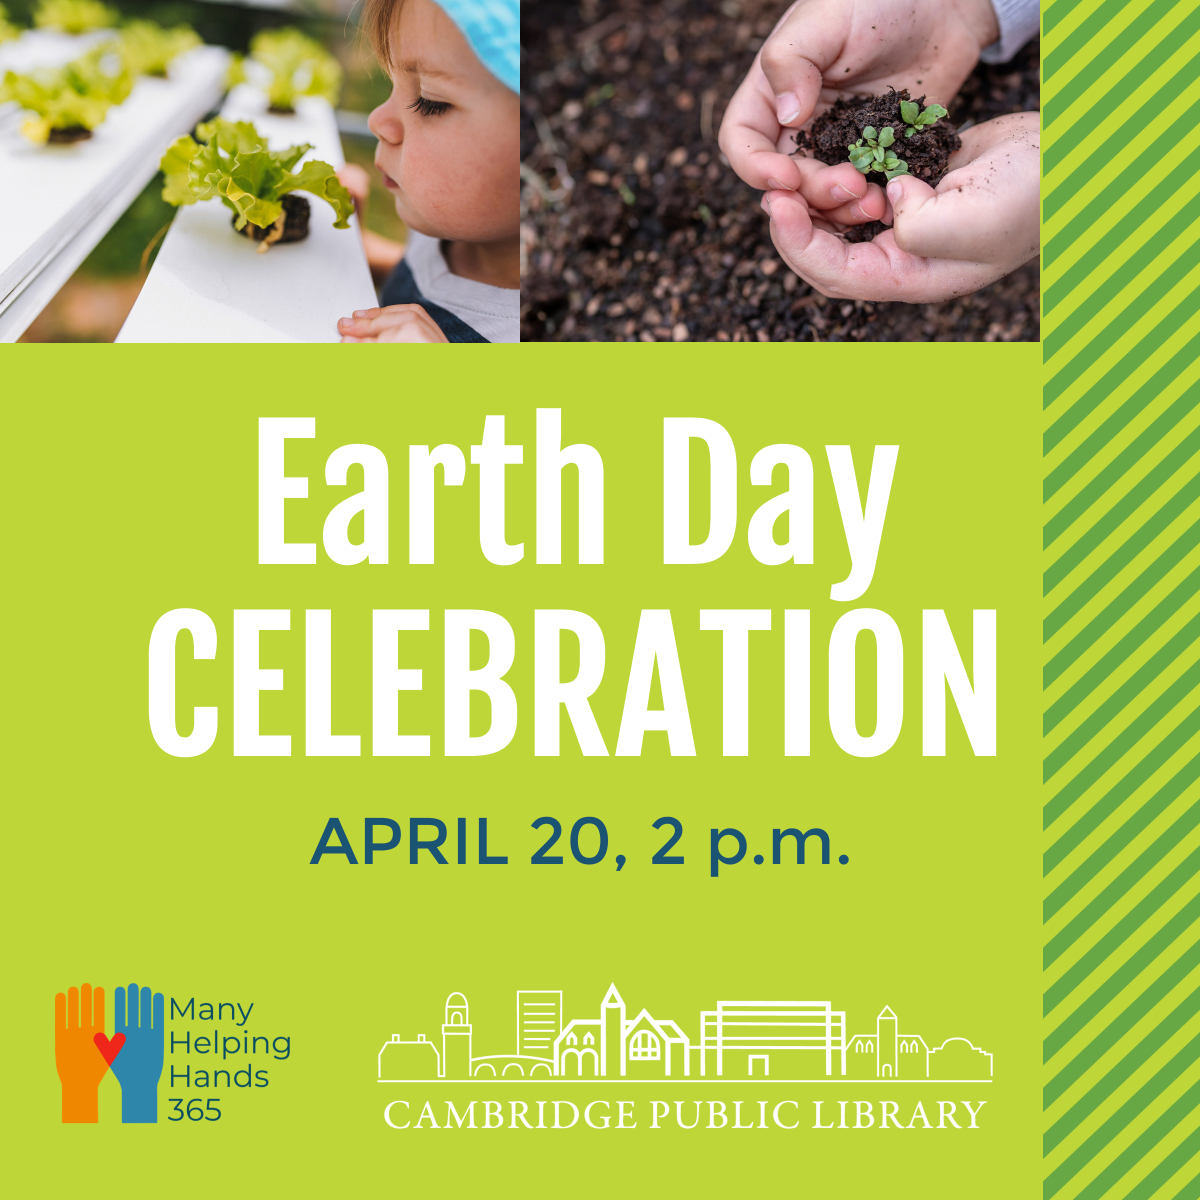 Vacation Week Program: Earth Day Celebration